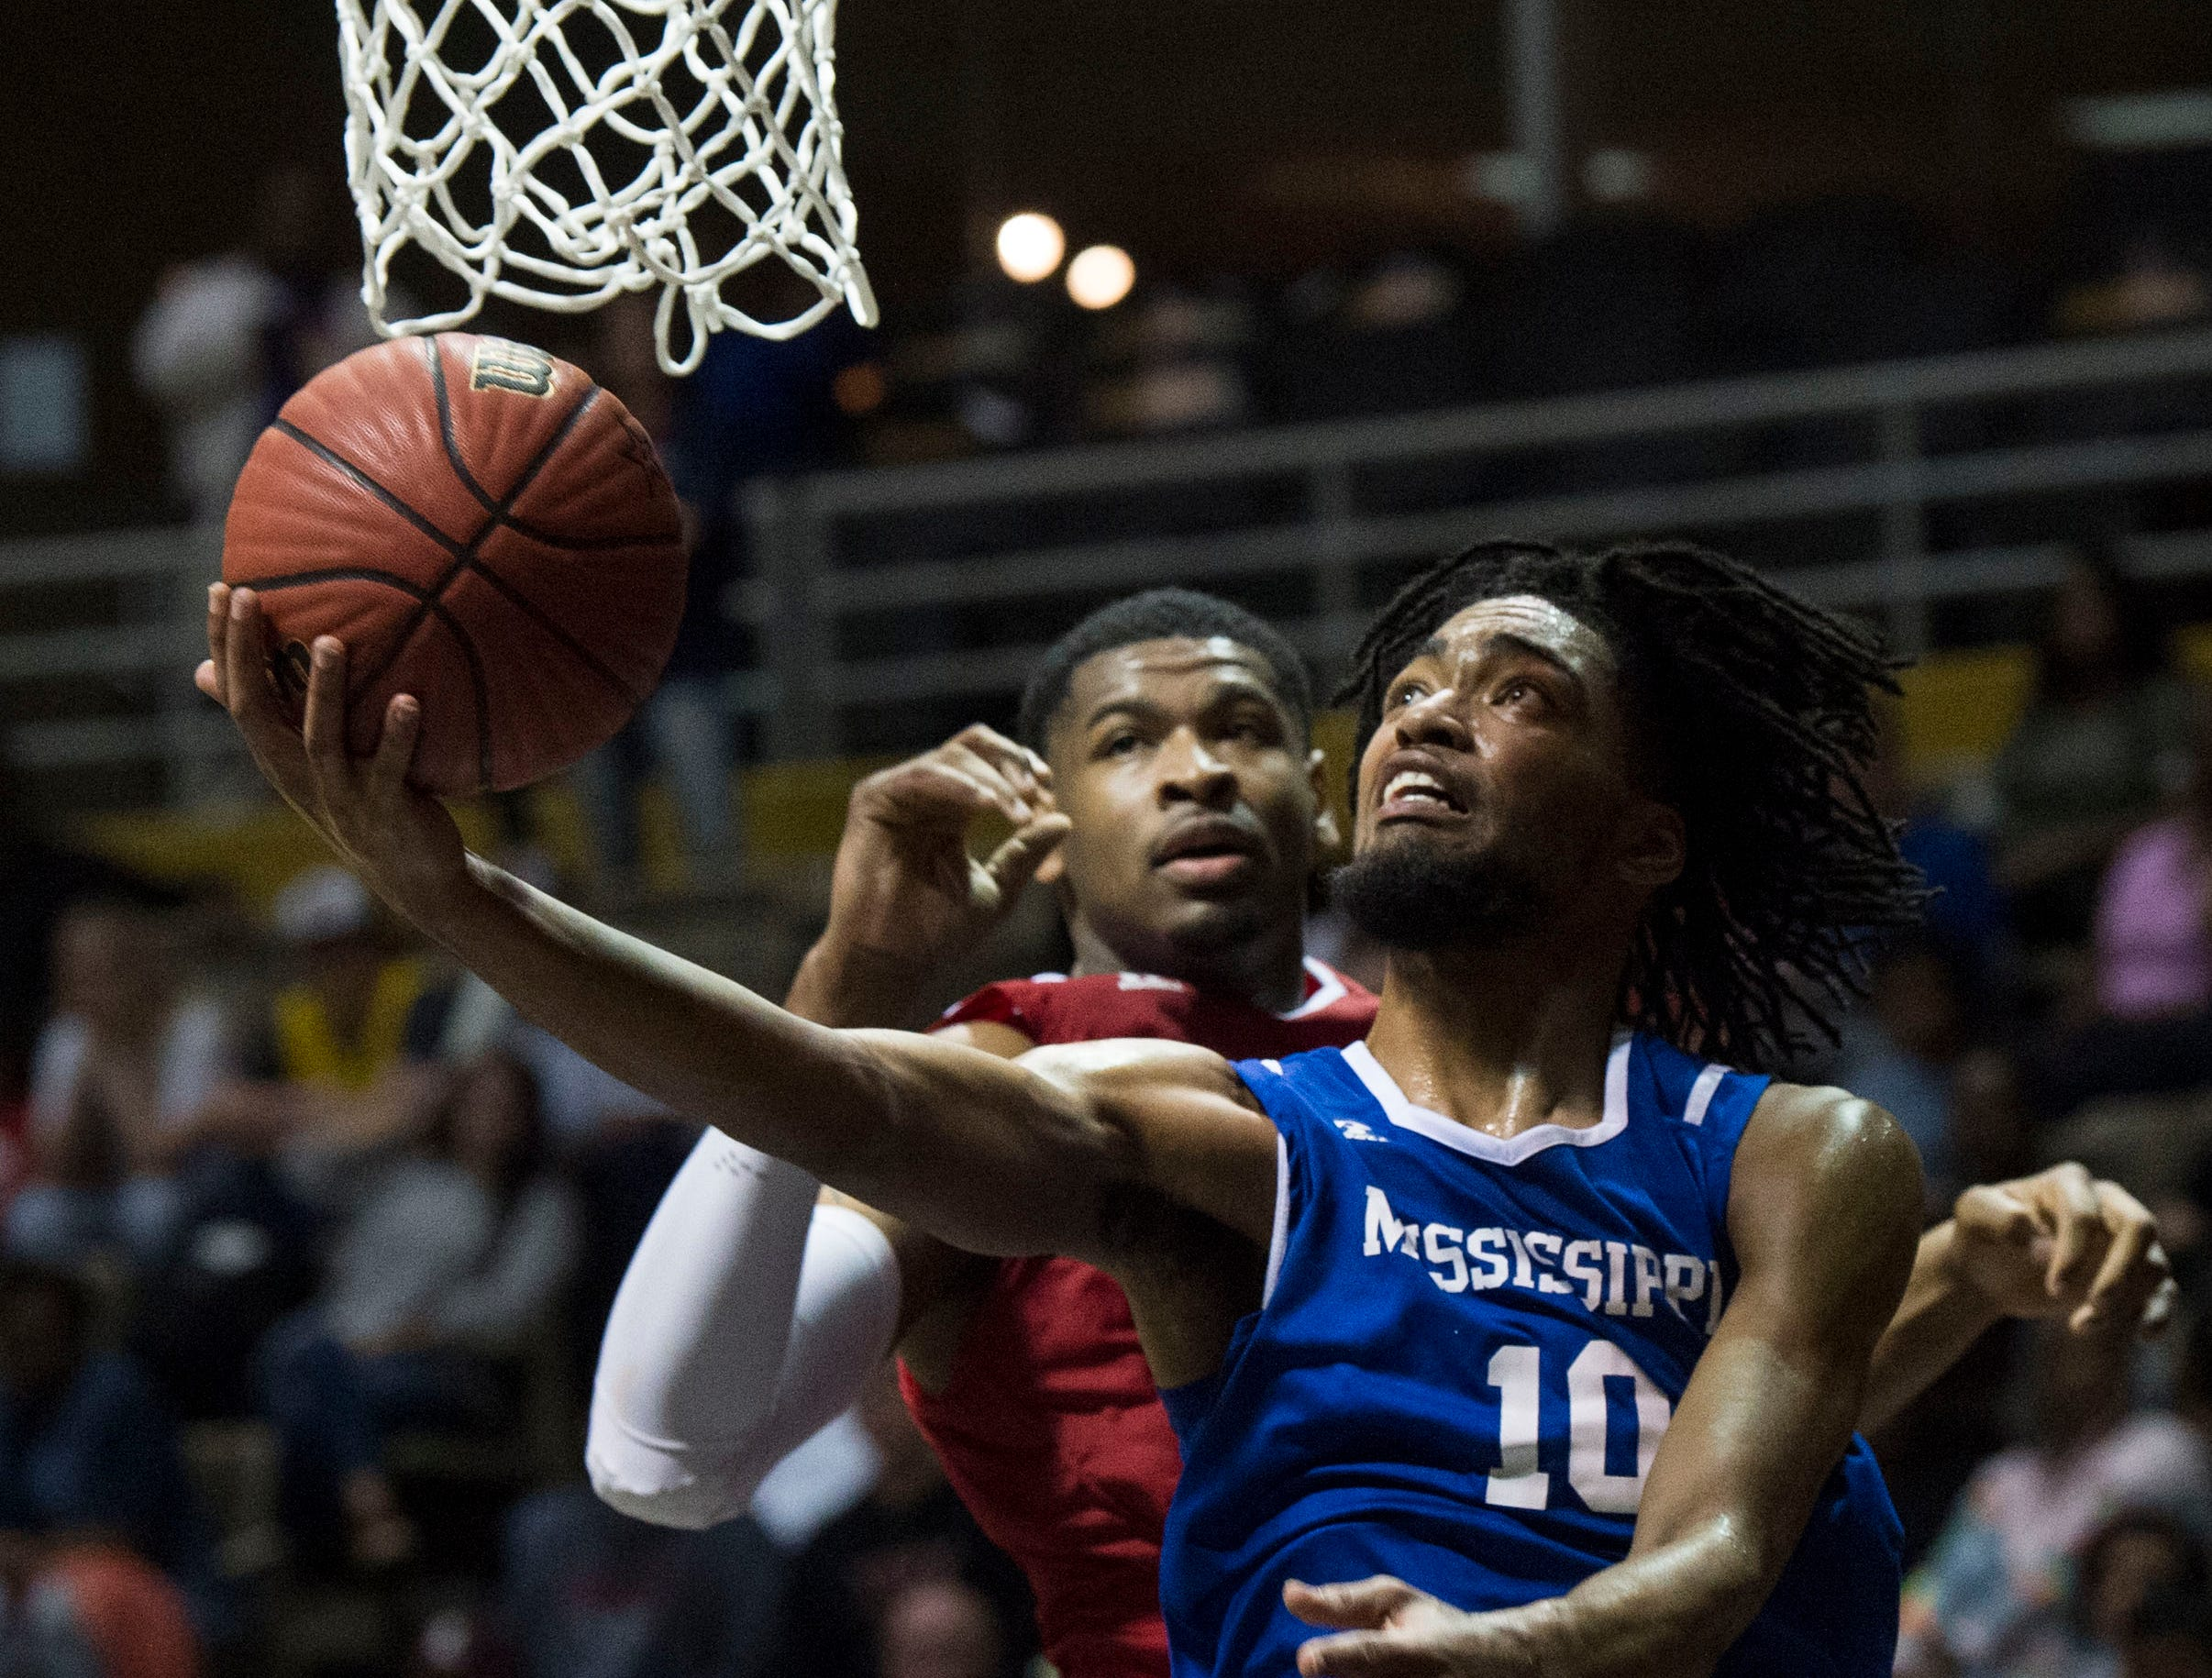 Mississippi's Vontrell Pringle (10) goes up for a layup during the Alabama-Mississippi All-Star game at the Dunn-Oliver Acadome in Montgomery, Ala., on Friday, March 15, 2019. Alabama All-stars defeated the Mississippi All-stars 107-90.